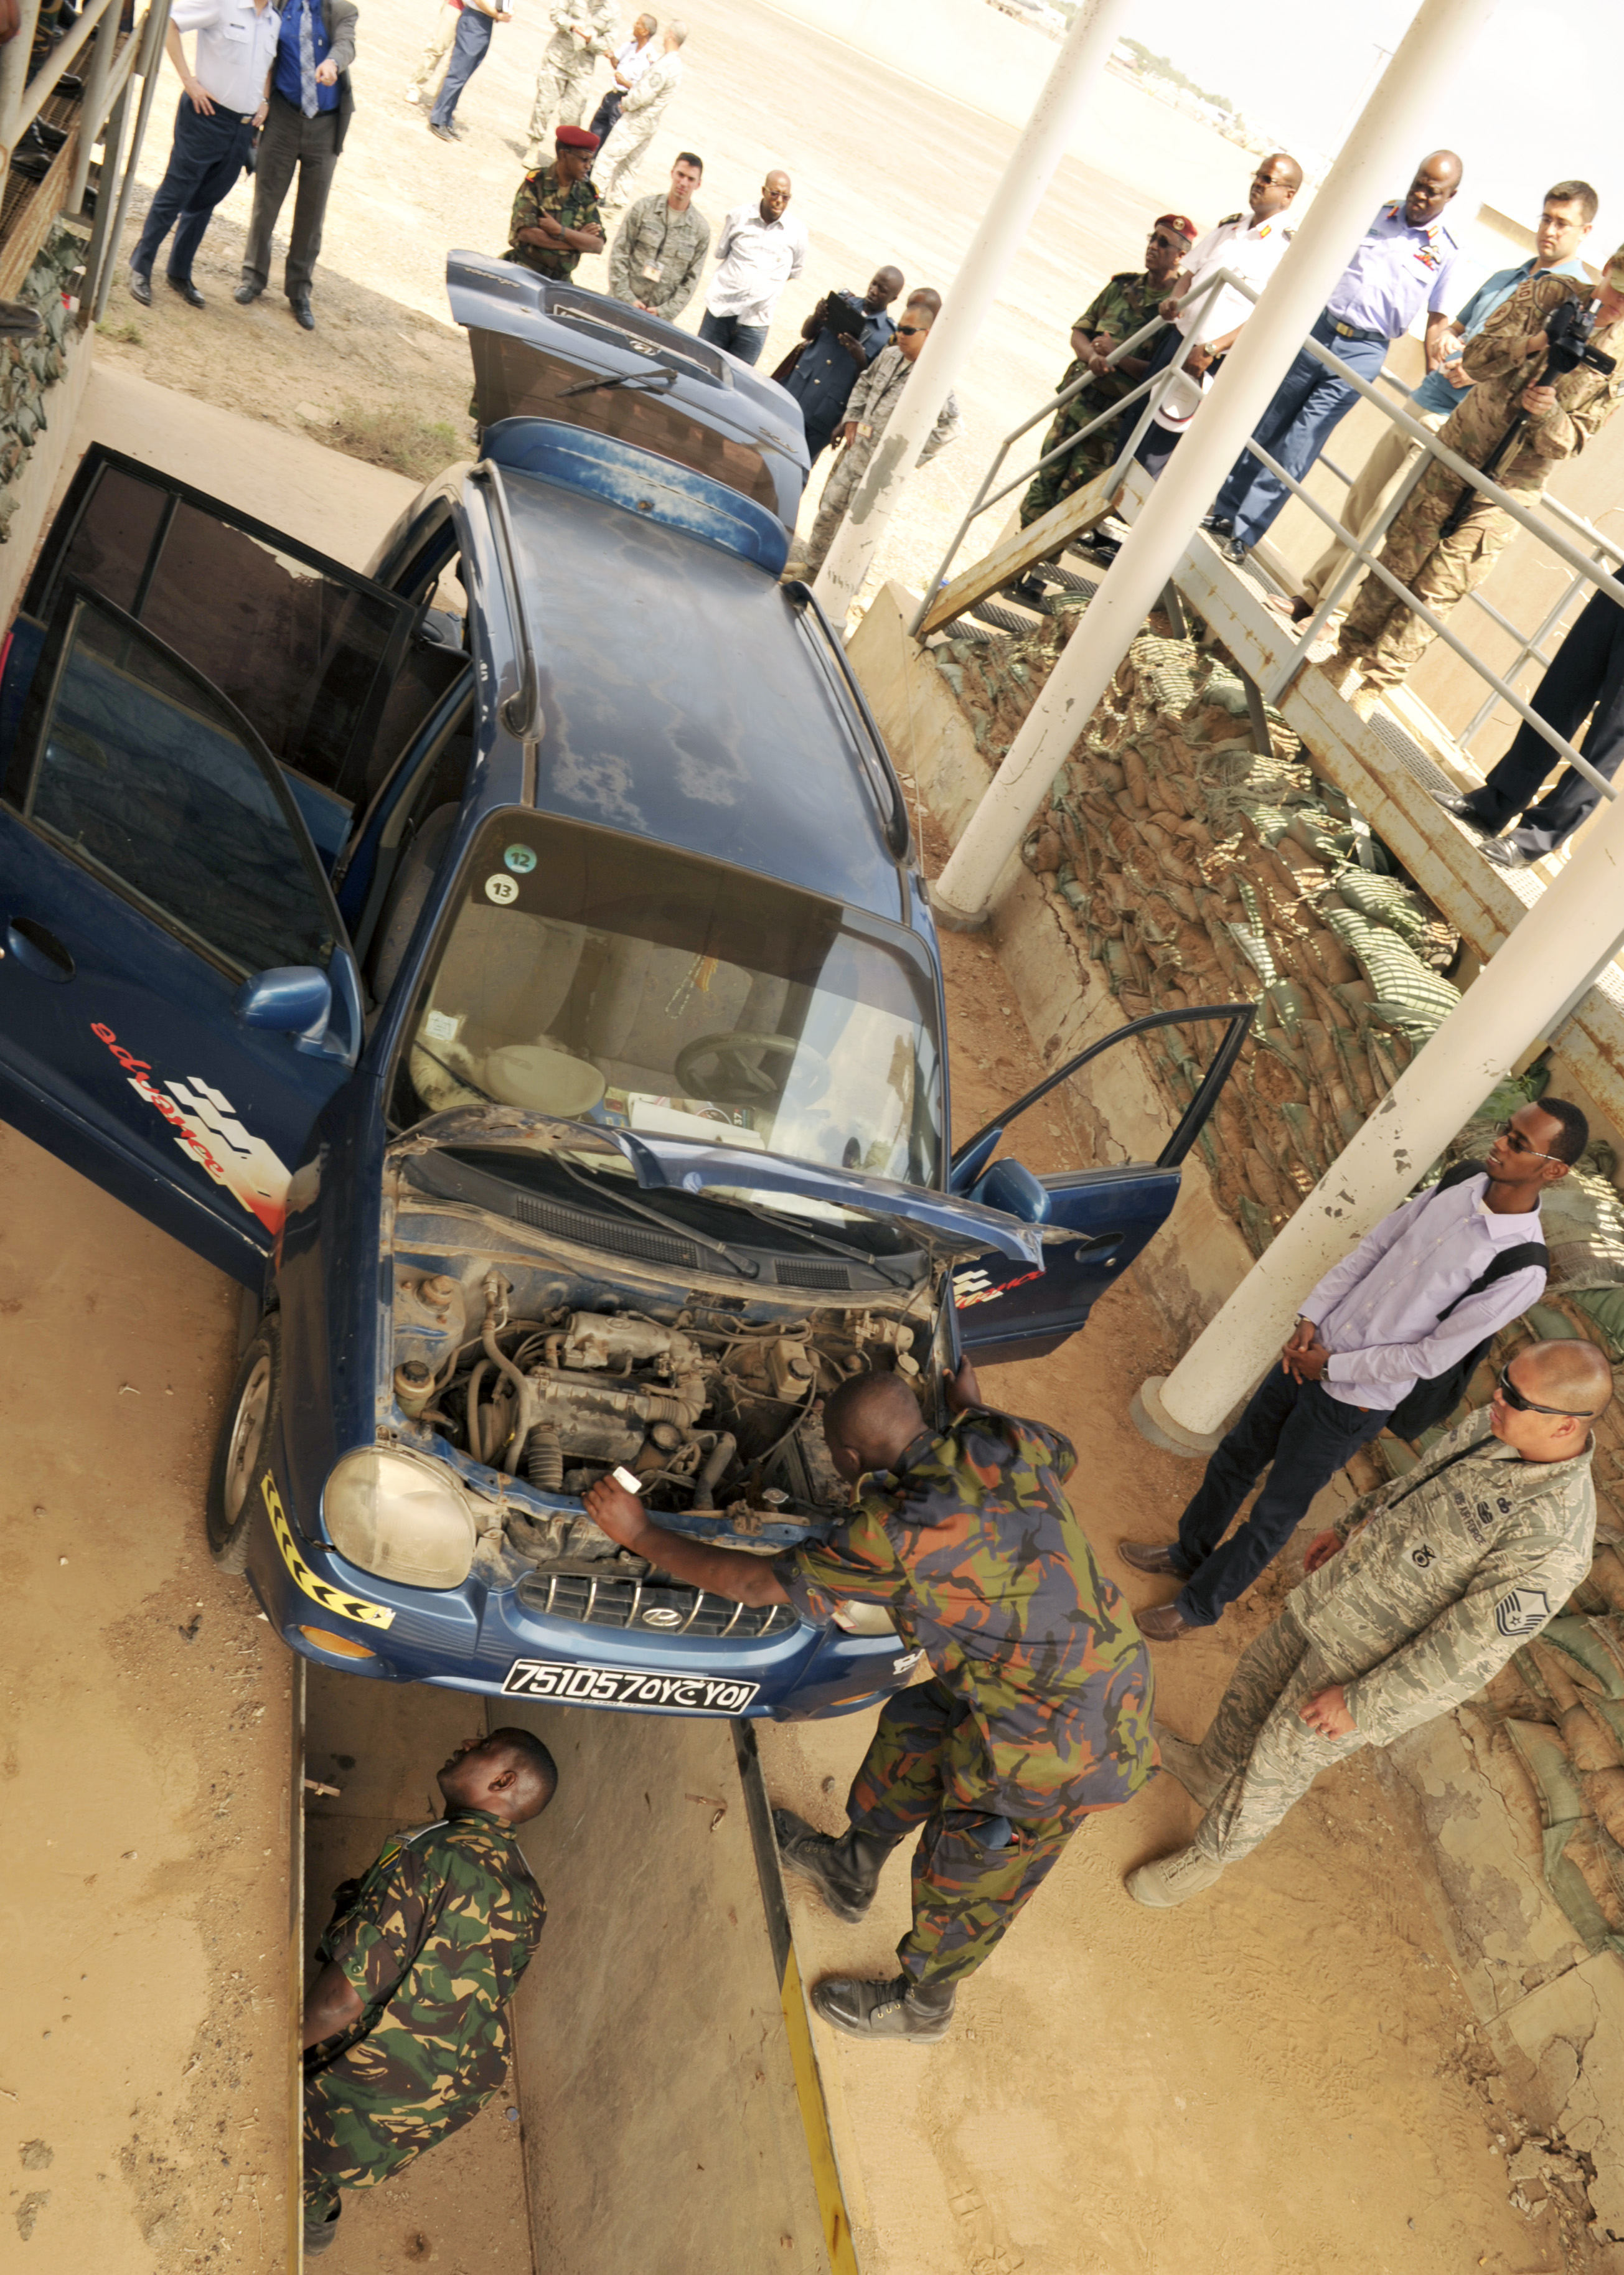 Kenya and Tanzania air force members conduct a vehicle inspection as part of an installation security knowledge exchange during African Partnership Flight–Djibouti at Djibouti Air Base, Feb. 9, 2015.  APF is the premiere program to bring together partner nations to increase cooperation and interoperability, which fosters stability and security throughout the continent. (U.S. Air Force Photo by Tech. Sgt. Ian Dean)